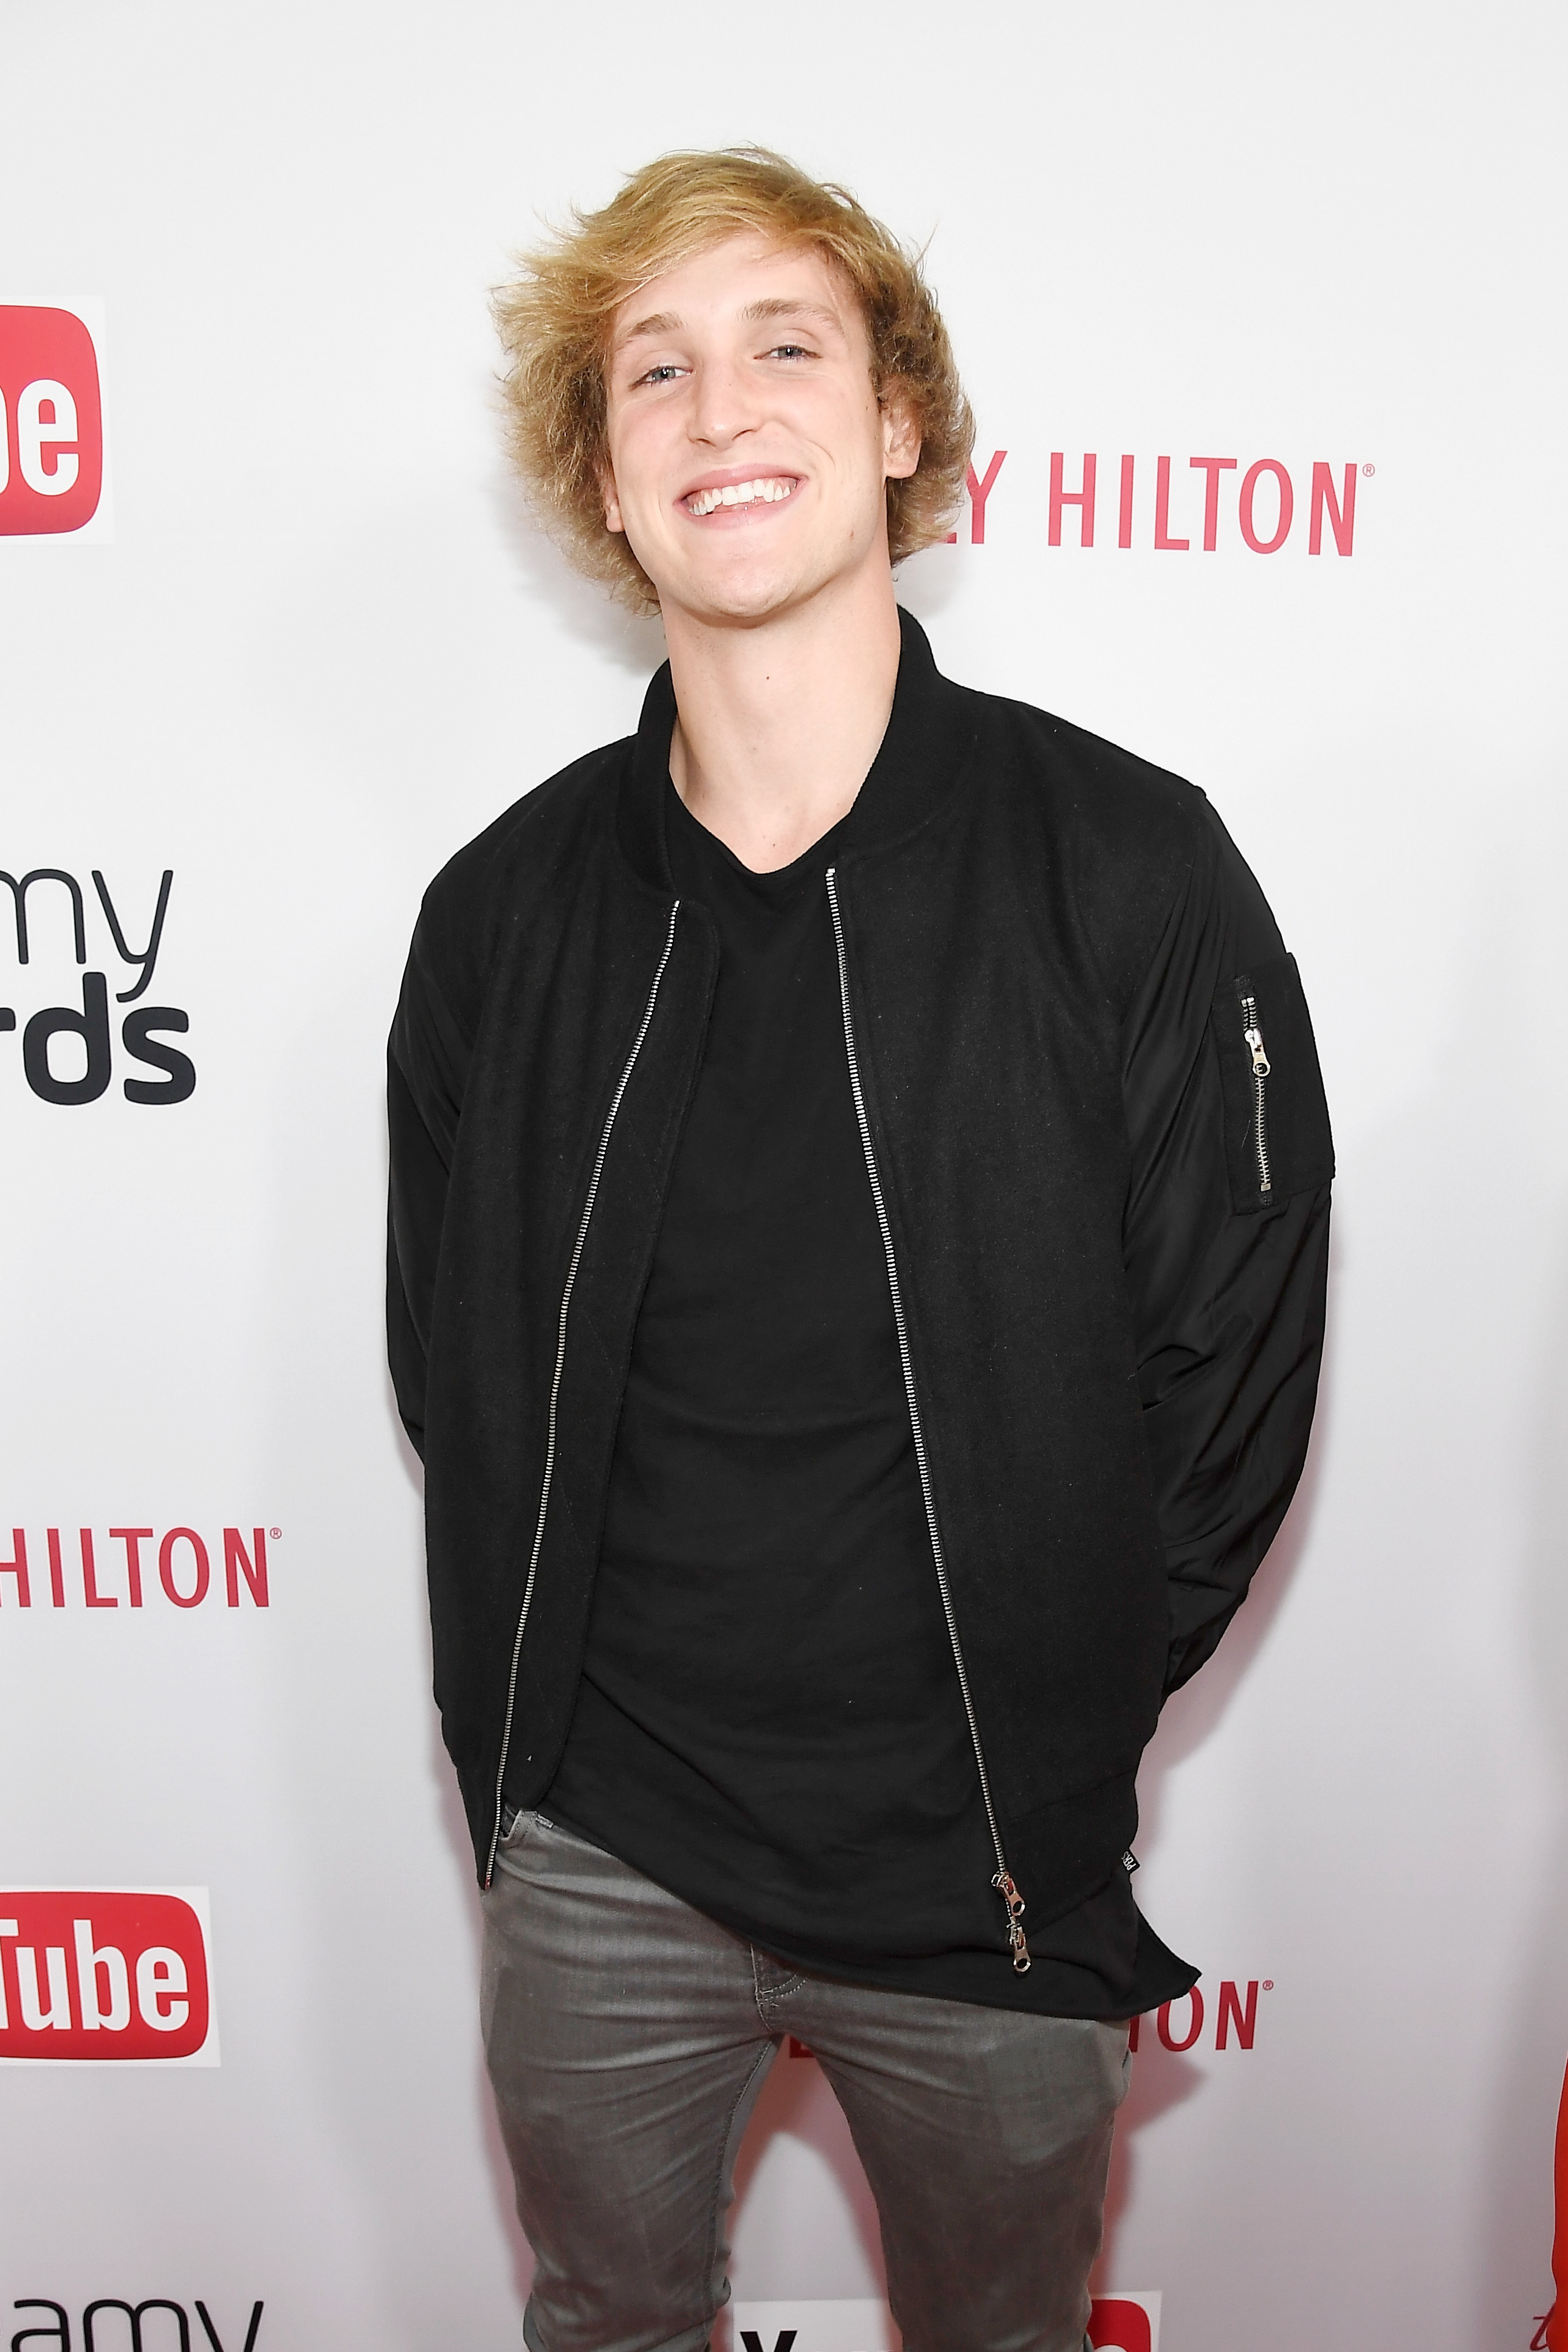 BEVERLY HILLS, CA - OCTOBER 04:  Internet personality Logan Paul attends the 6th annual Streamy Awards hosted by King Bach and live streamed on YouTube at The Beverly Hilton Hotel on October 4, 2016 in Beverly Hills, California.  (Photo by Frazer Harrison/Getty Images for dick clark productions)  Getty, TL